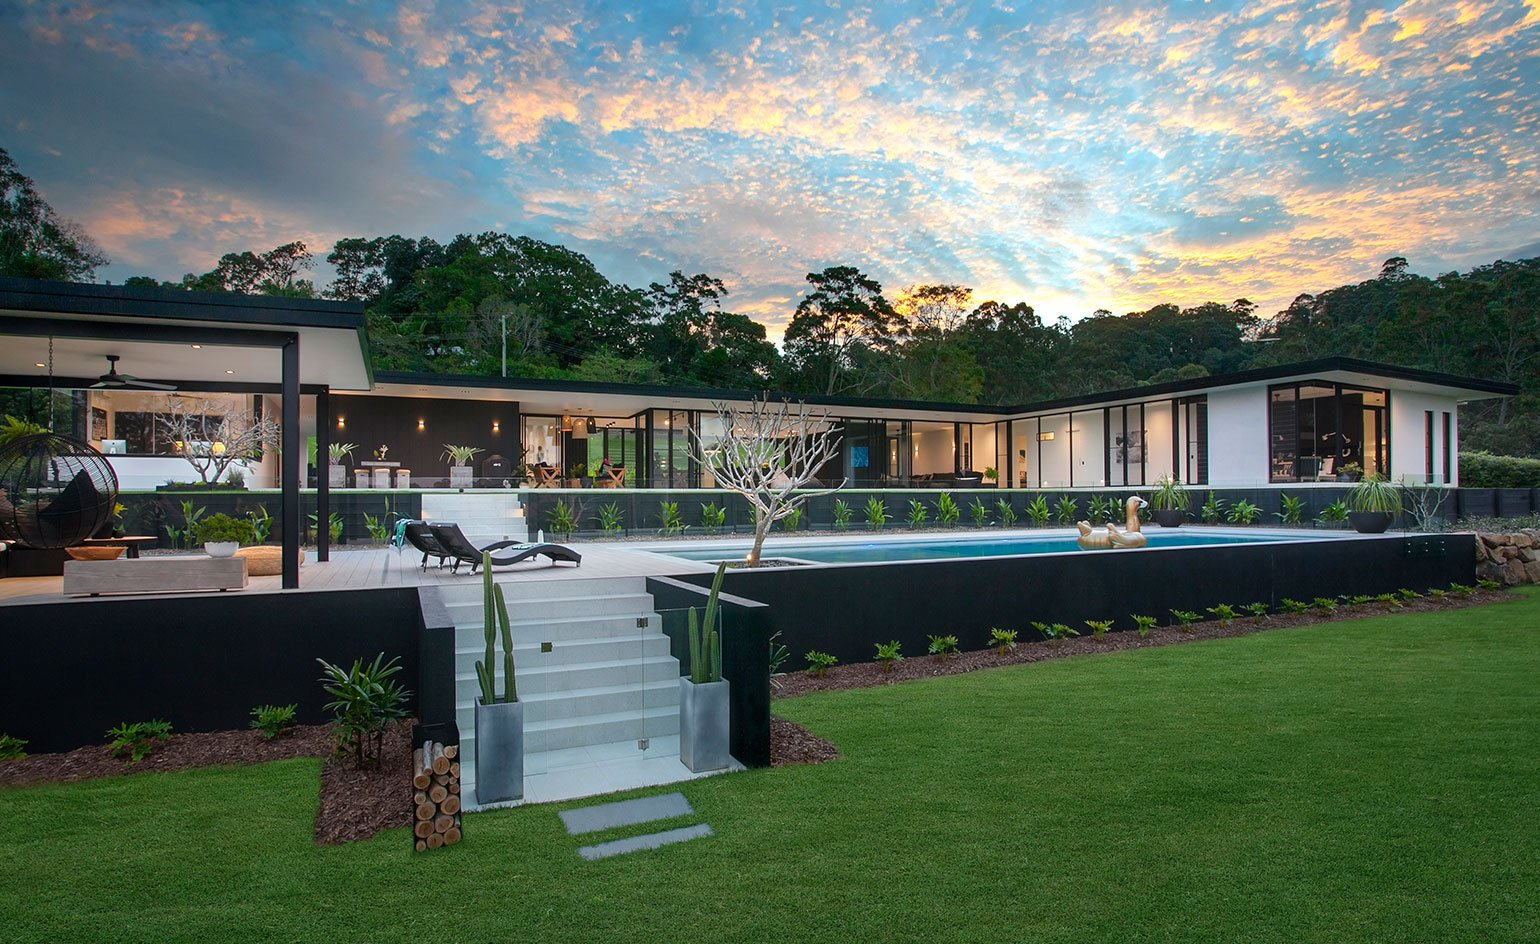 Contemporary house - architect Sarah Waller's Doonan Glass House - exterior